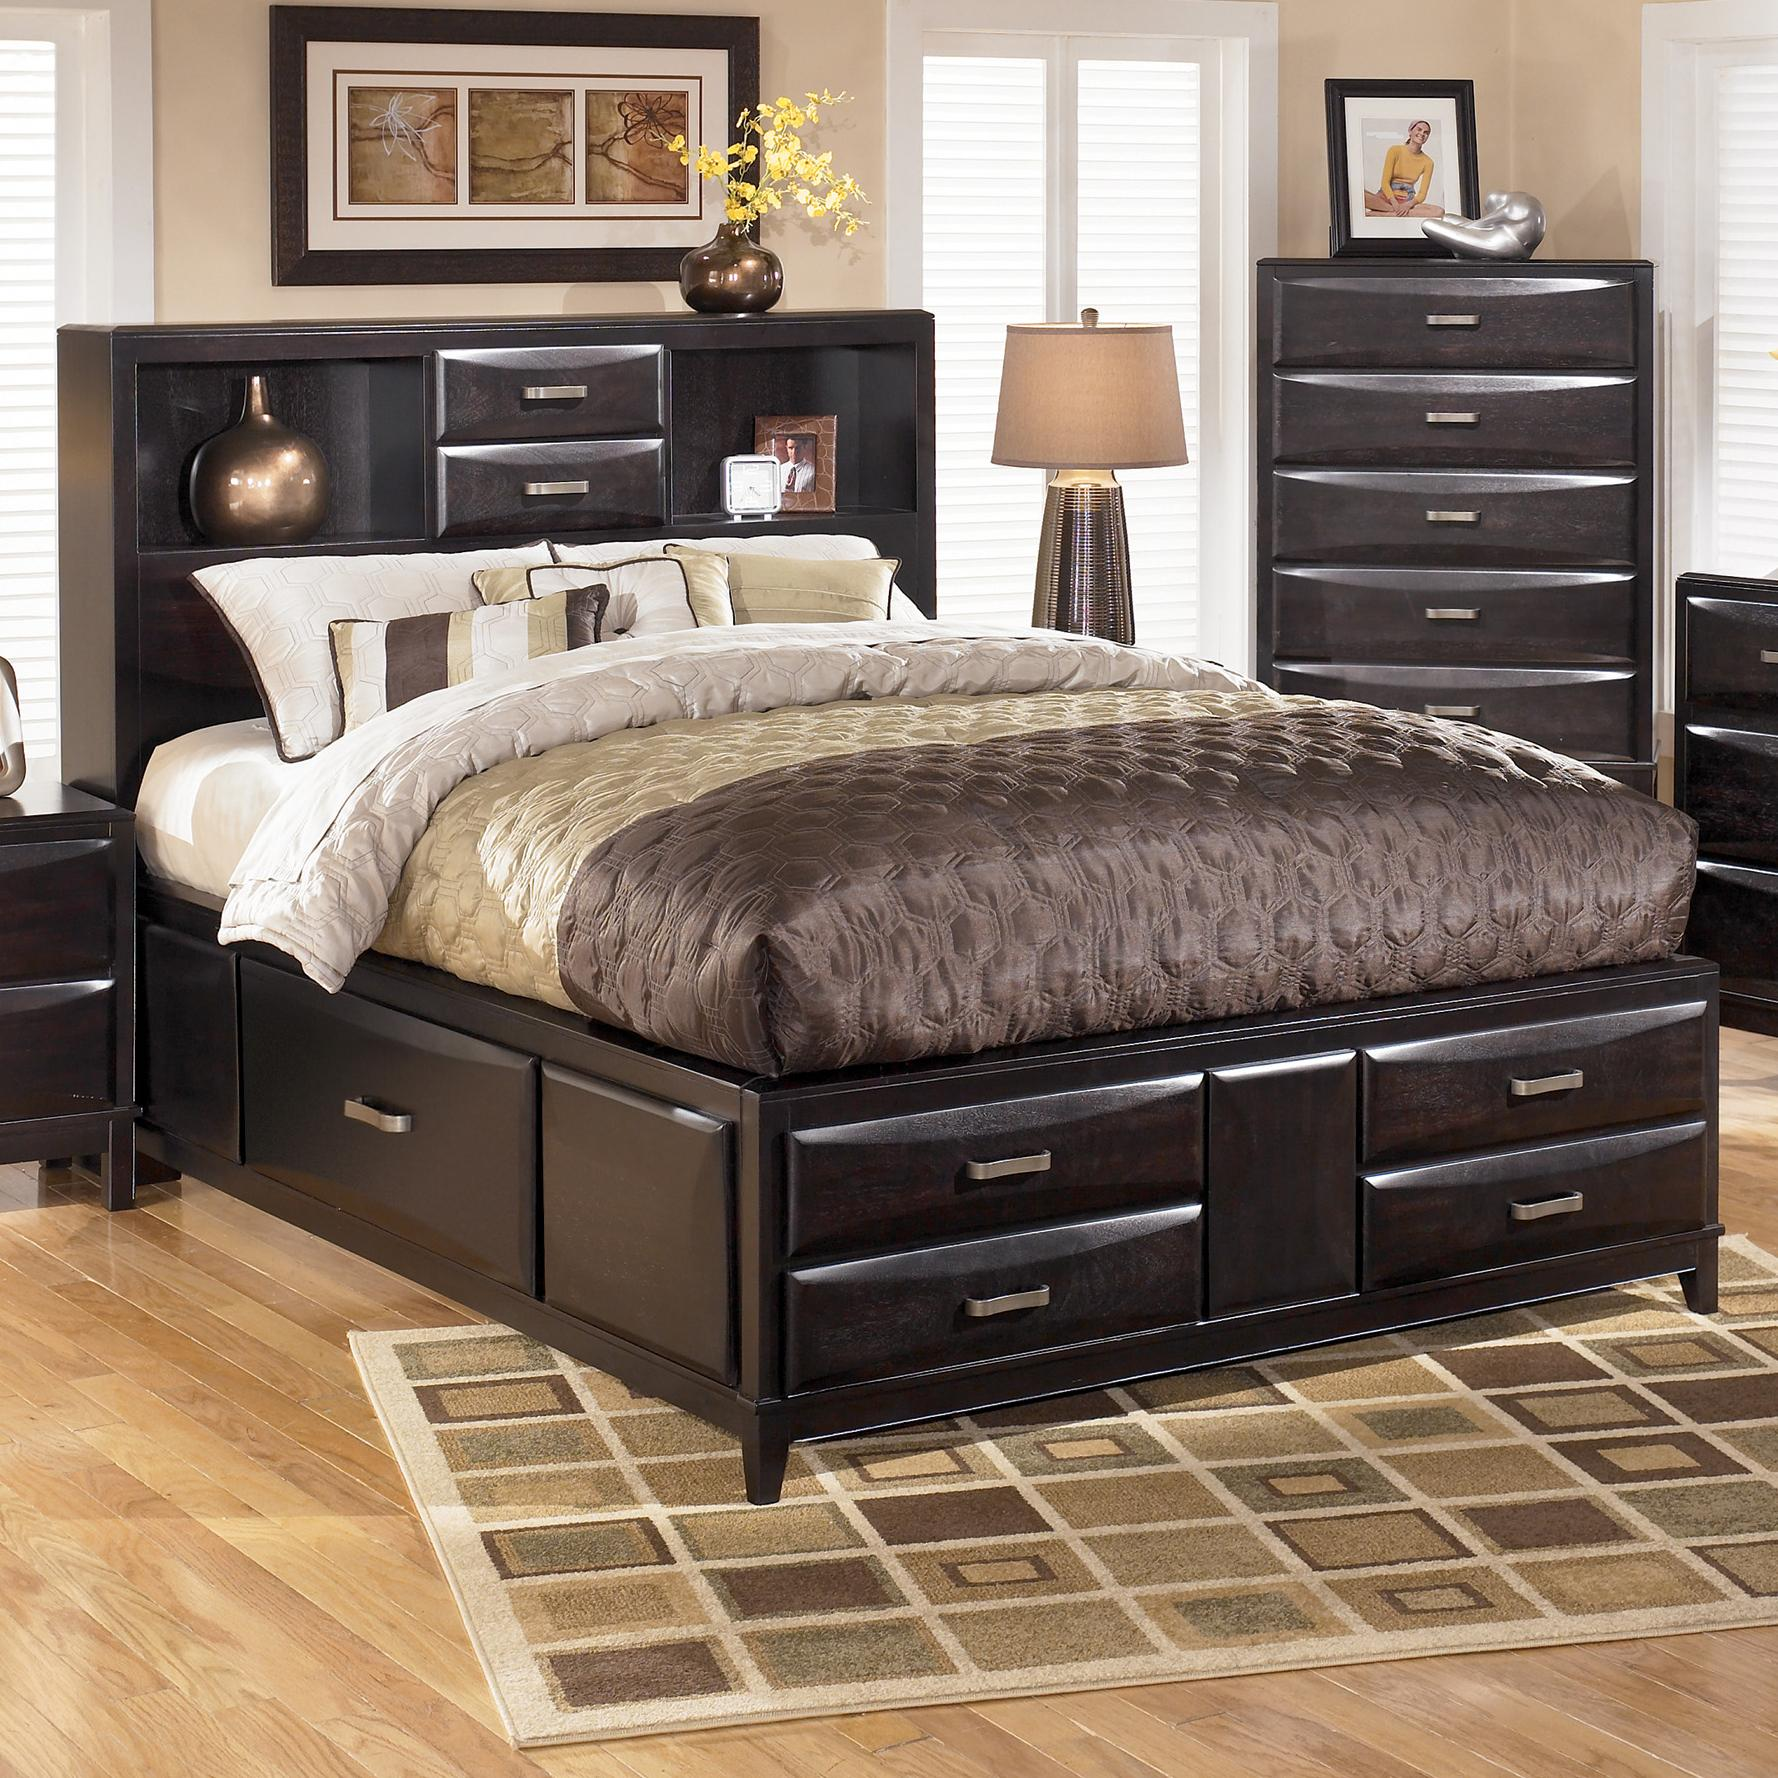 Ashley Furniture Kira King Storage Bed Wayside Furniture - Ashley furniture store bedroom sets